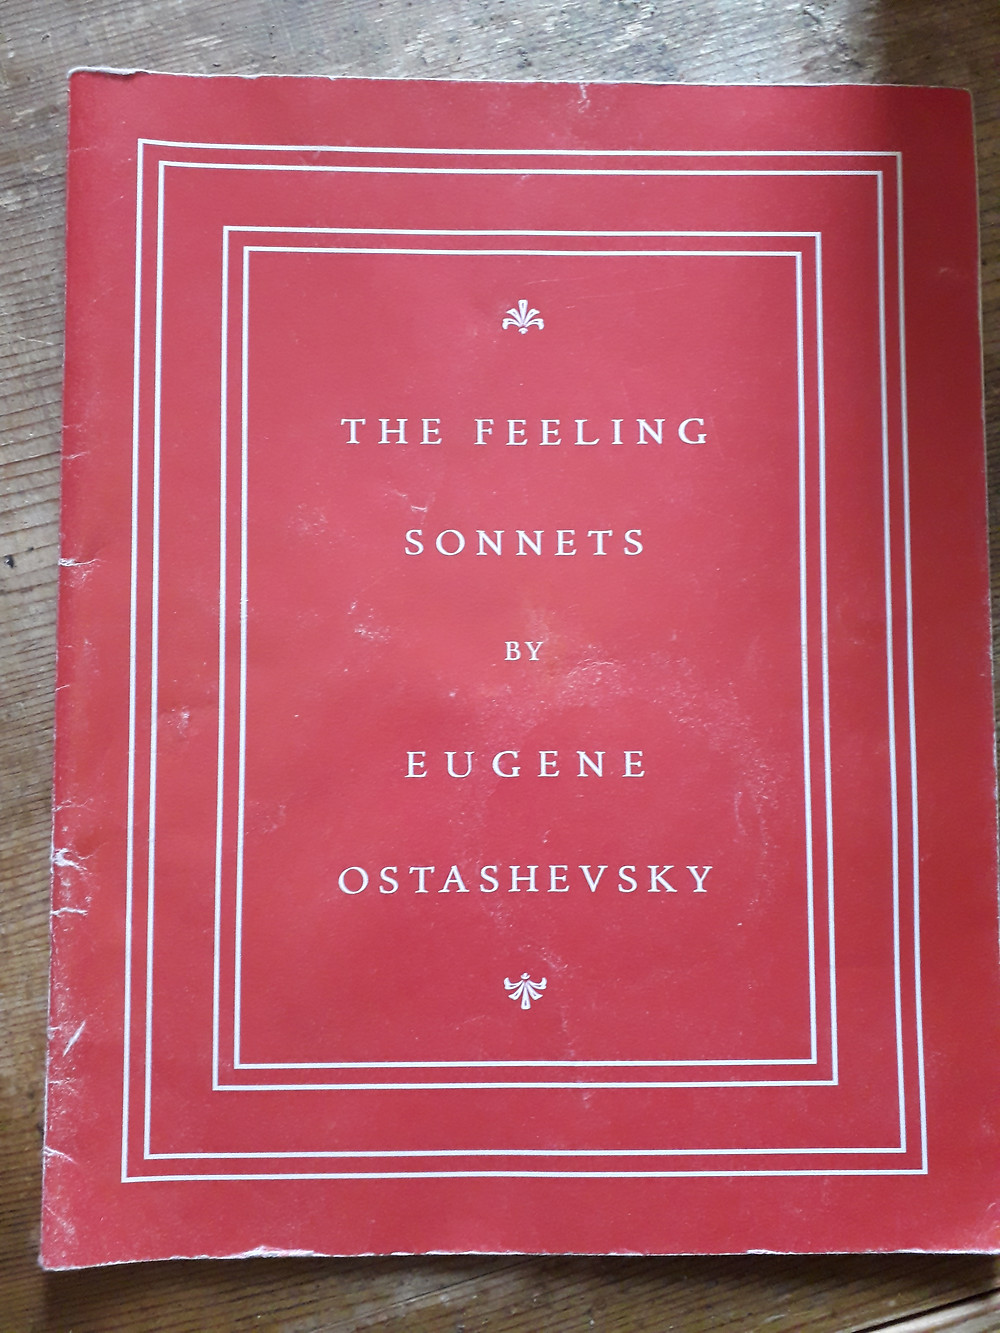 Red-coloured book cover for The Feeling Sonnets